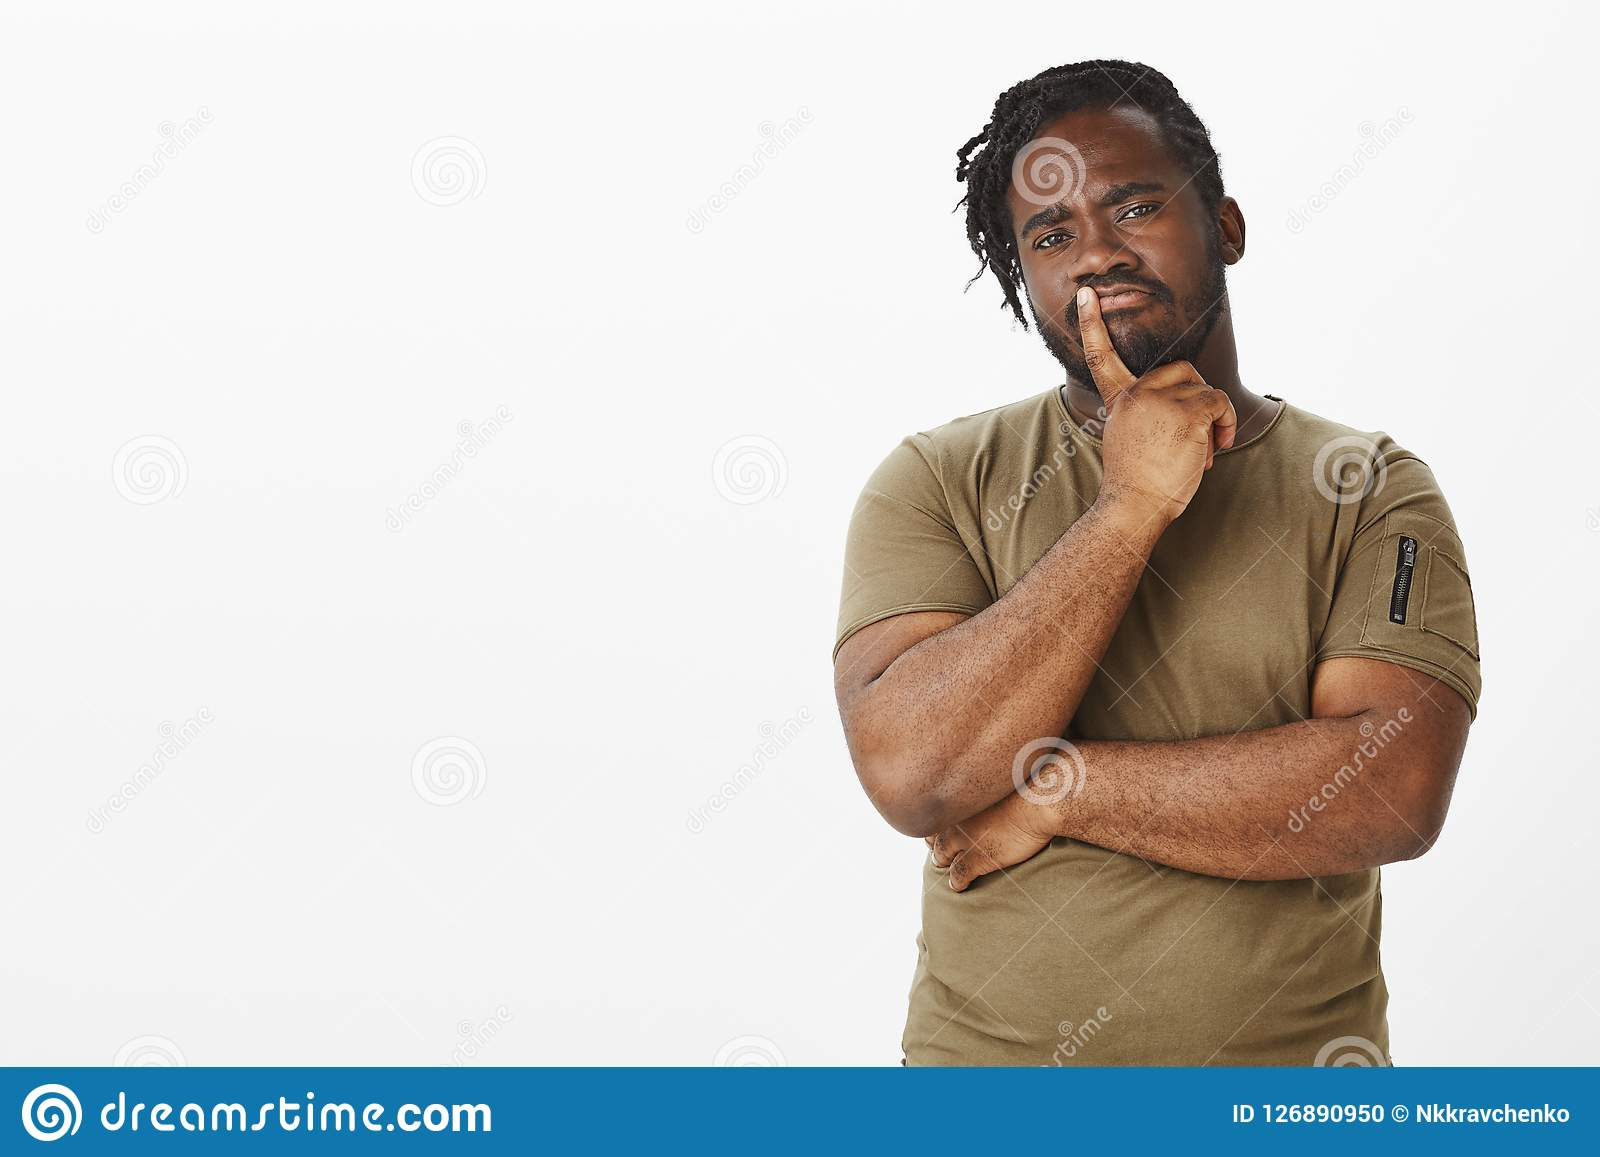 Guy making importrant decision. Portrait of smart thoughtful african boyfriend in military t-shirt, frowning and holding